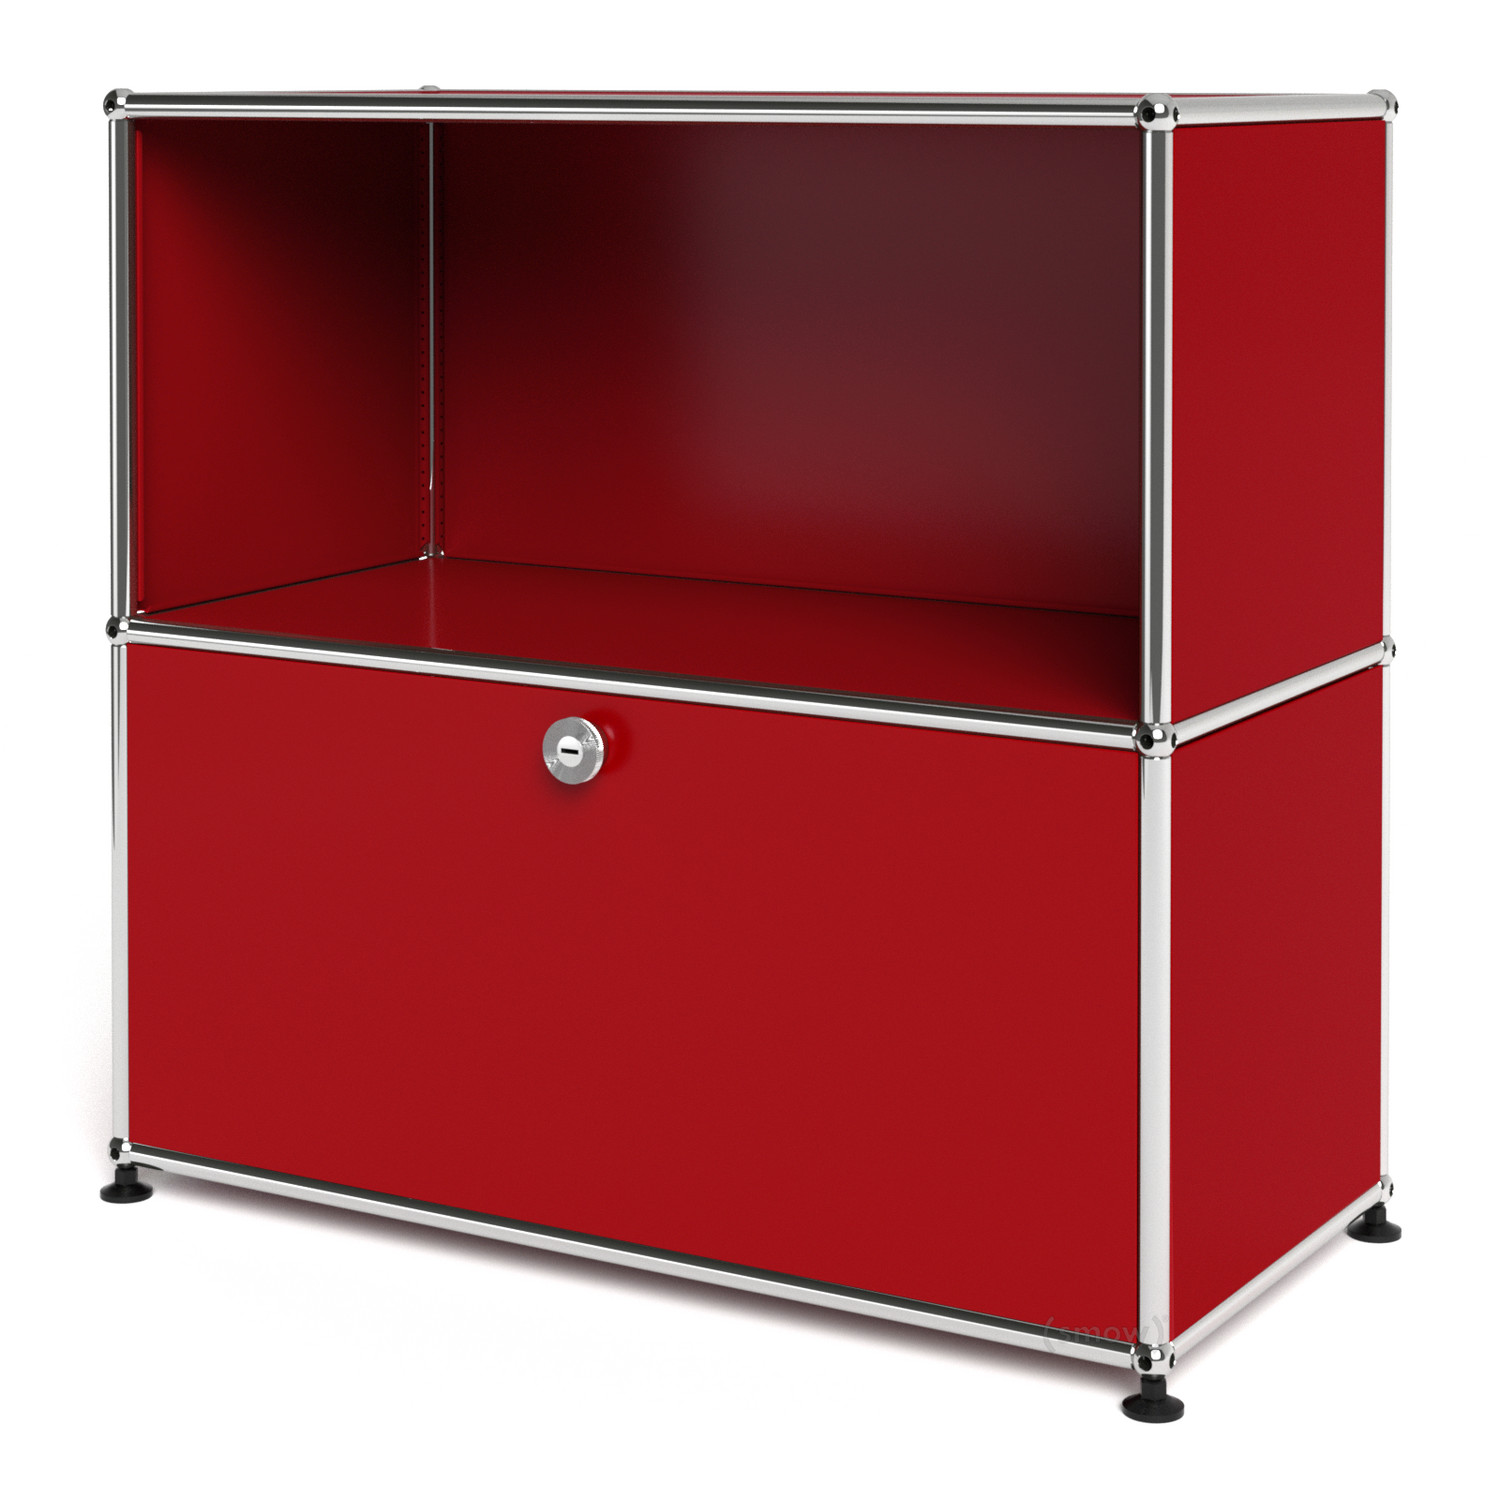 Usm haller sideboard m customisable usm ruby red open for Usm haller sideboard weiay